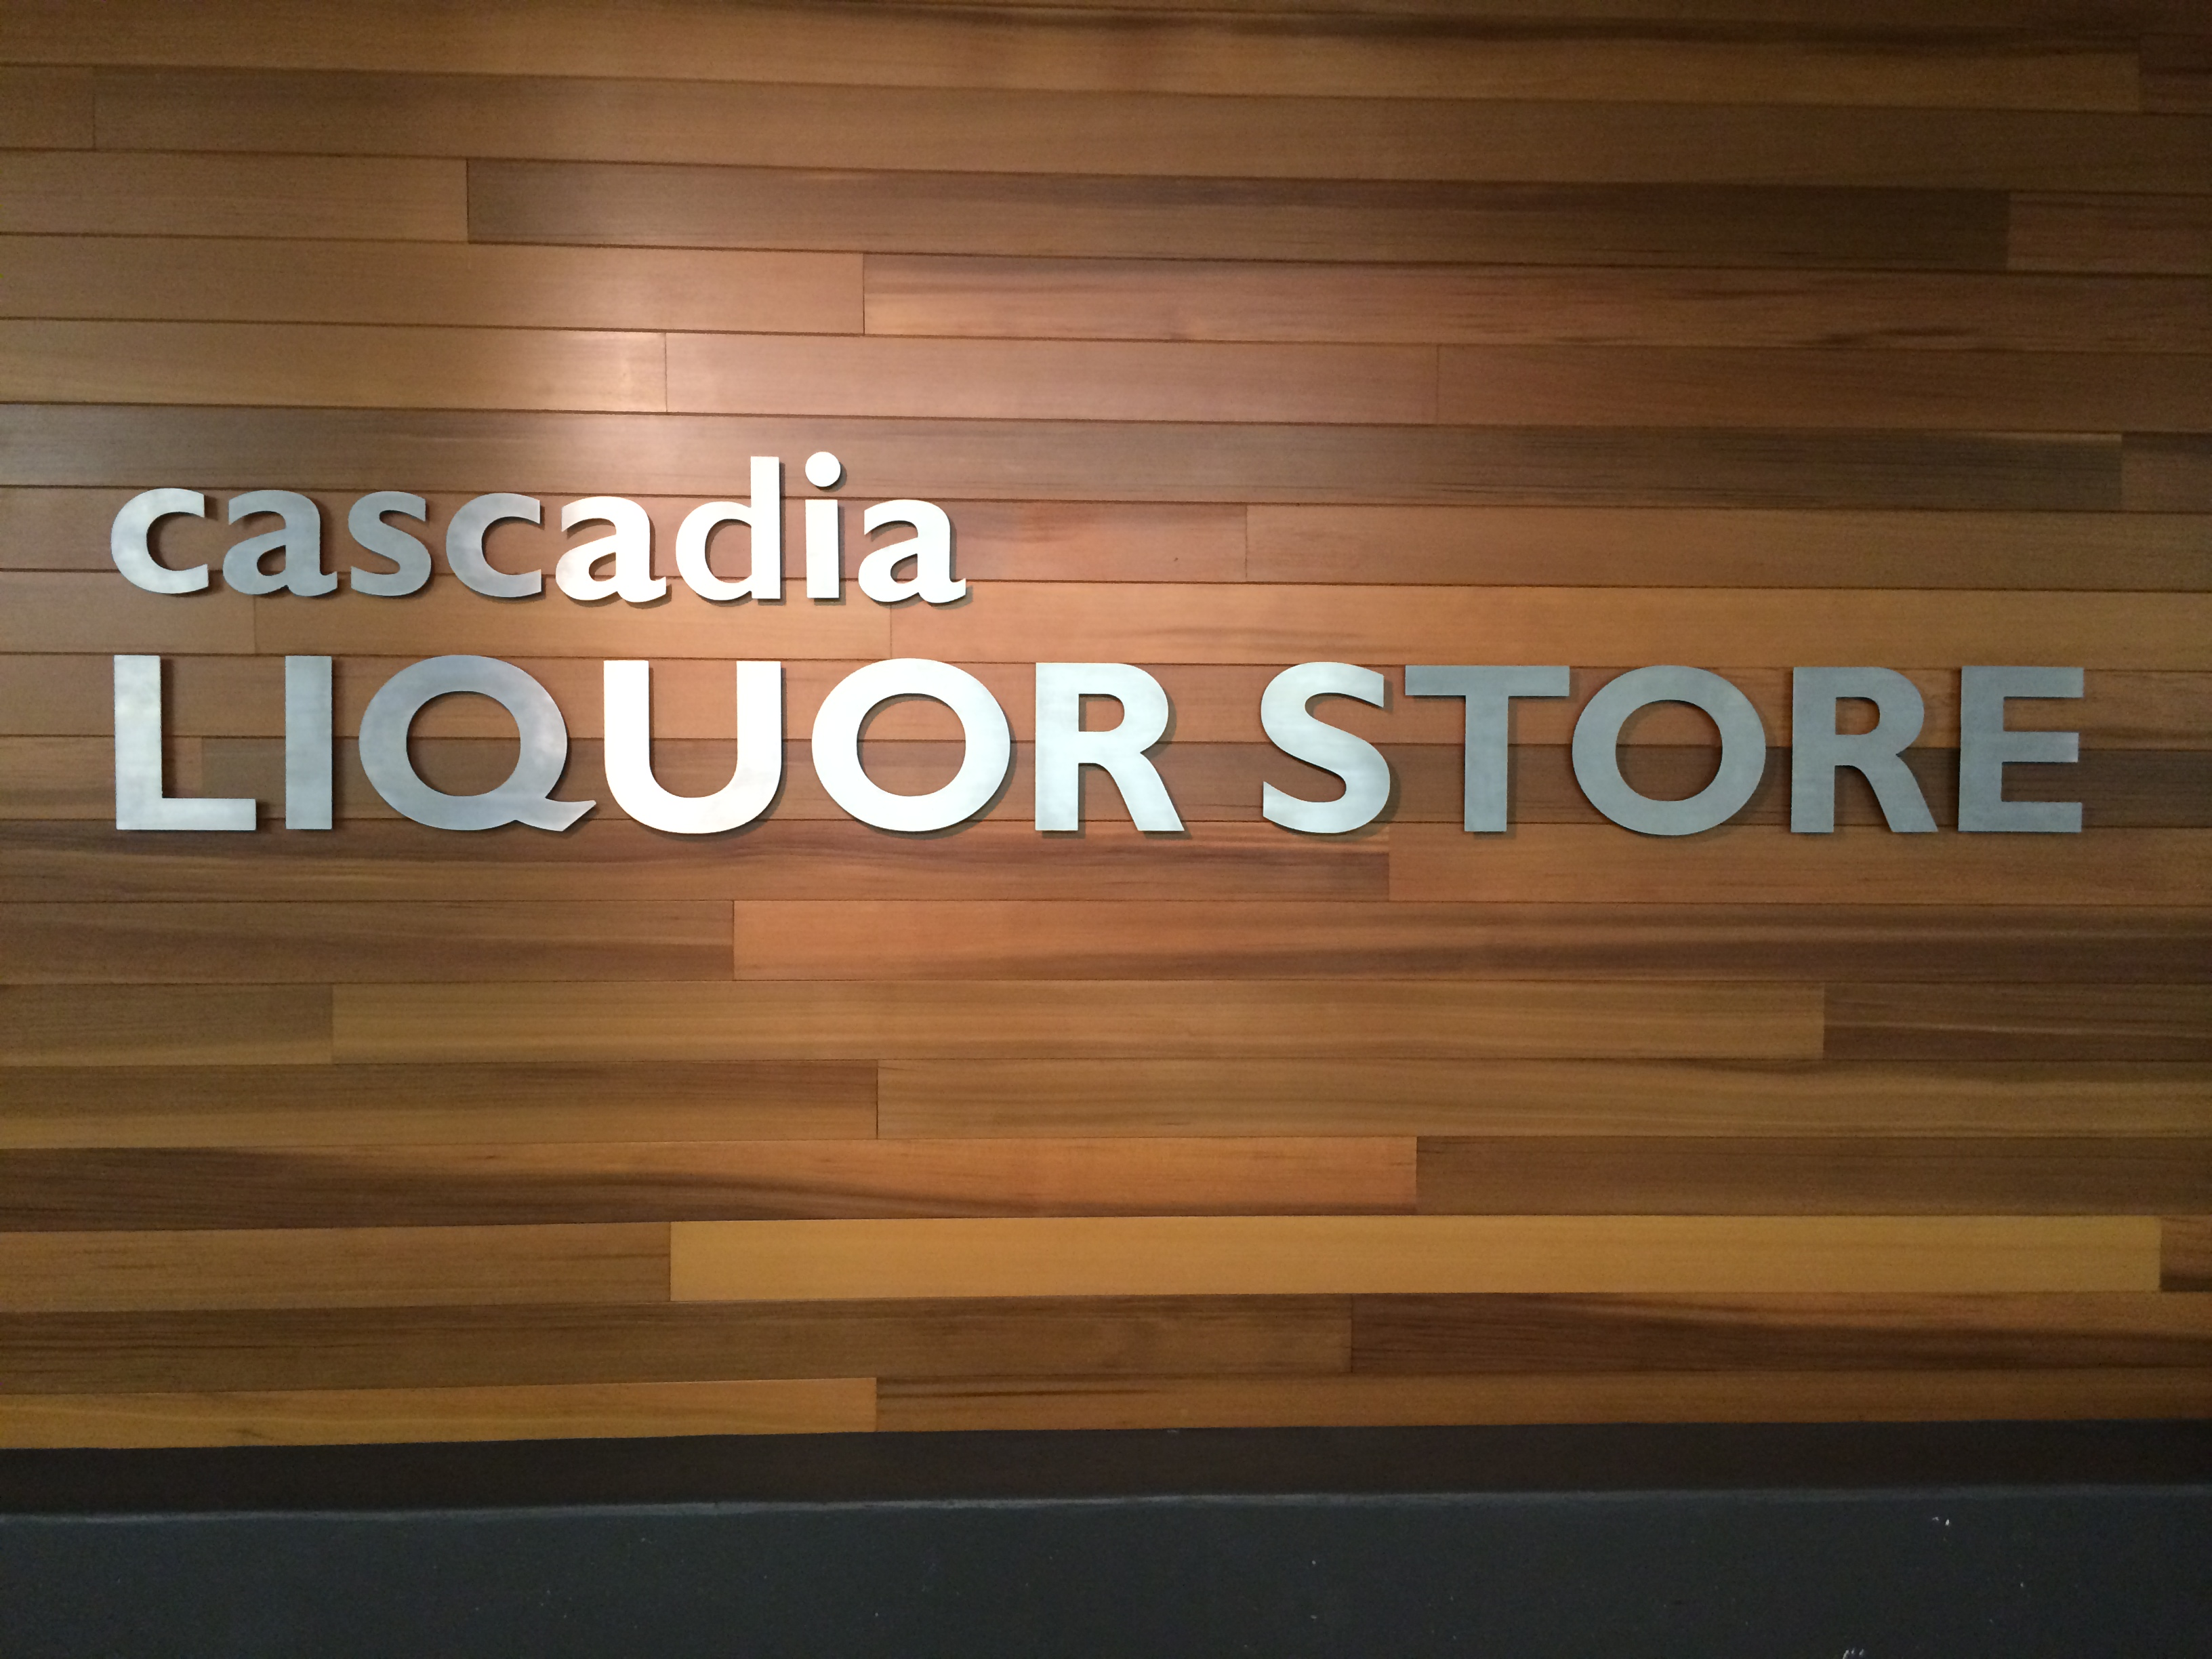 Cascadia Liquor Store Sign